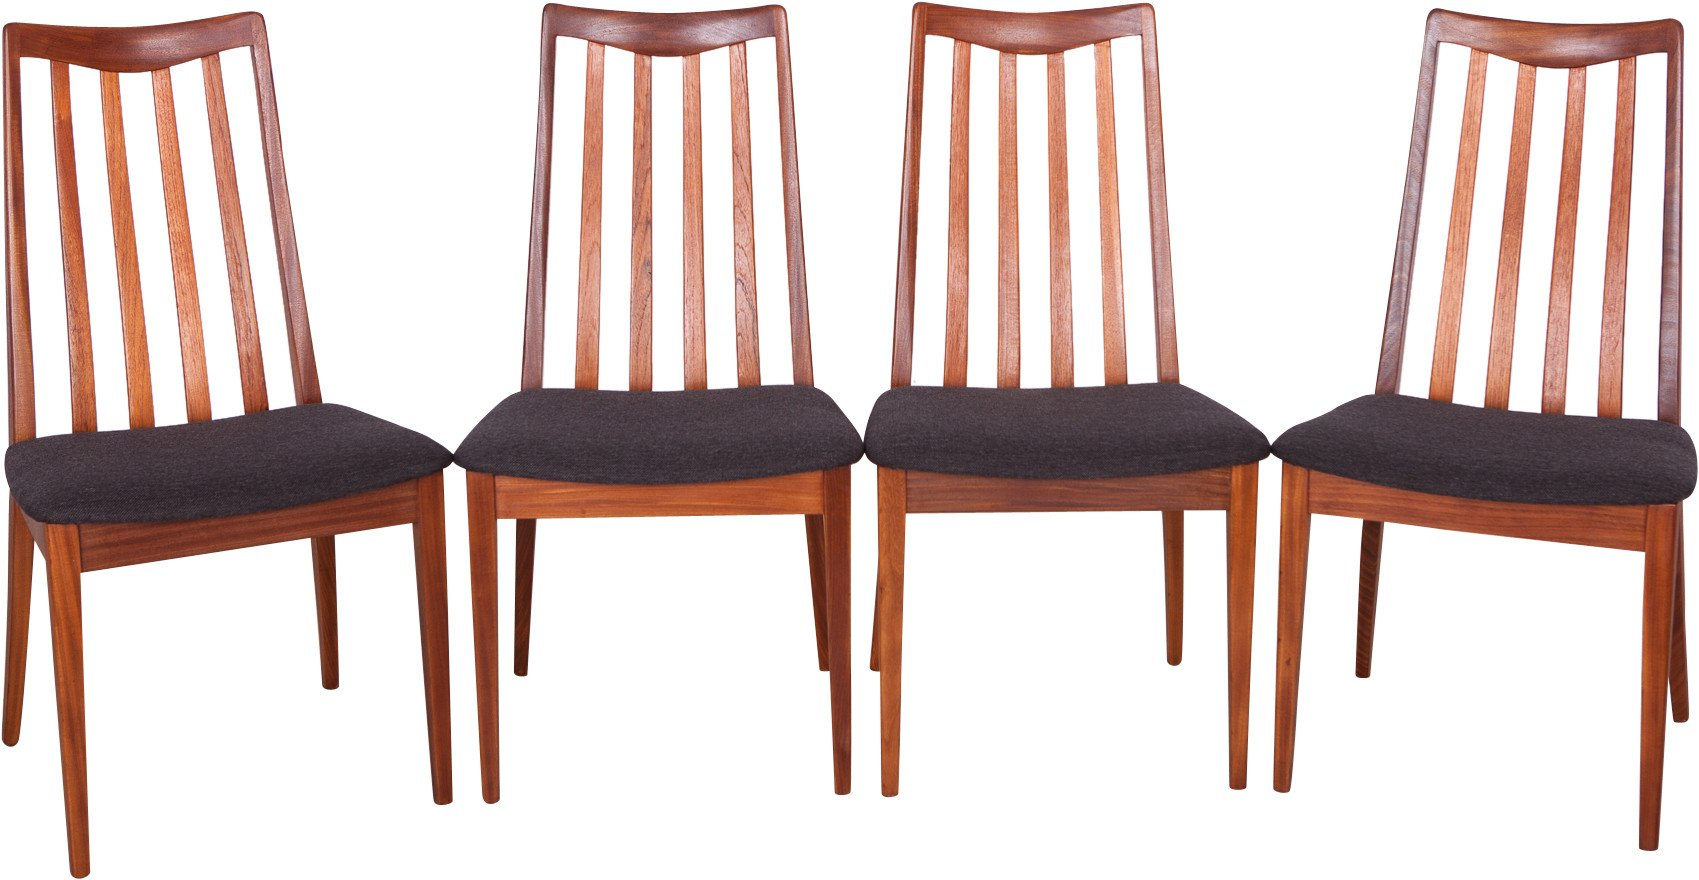 Set of Four Chairs, G-Plan, United Kingdom, 1960s